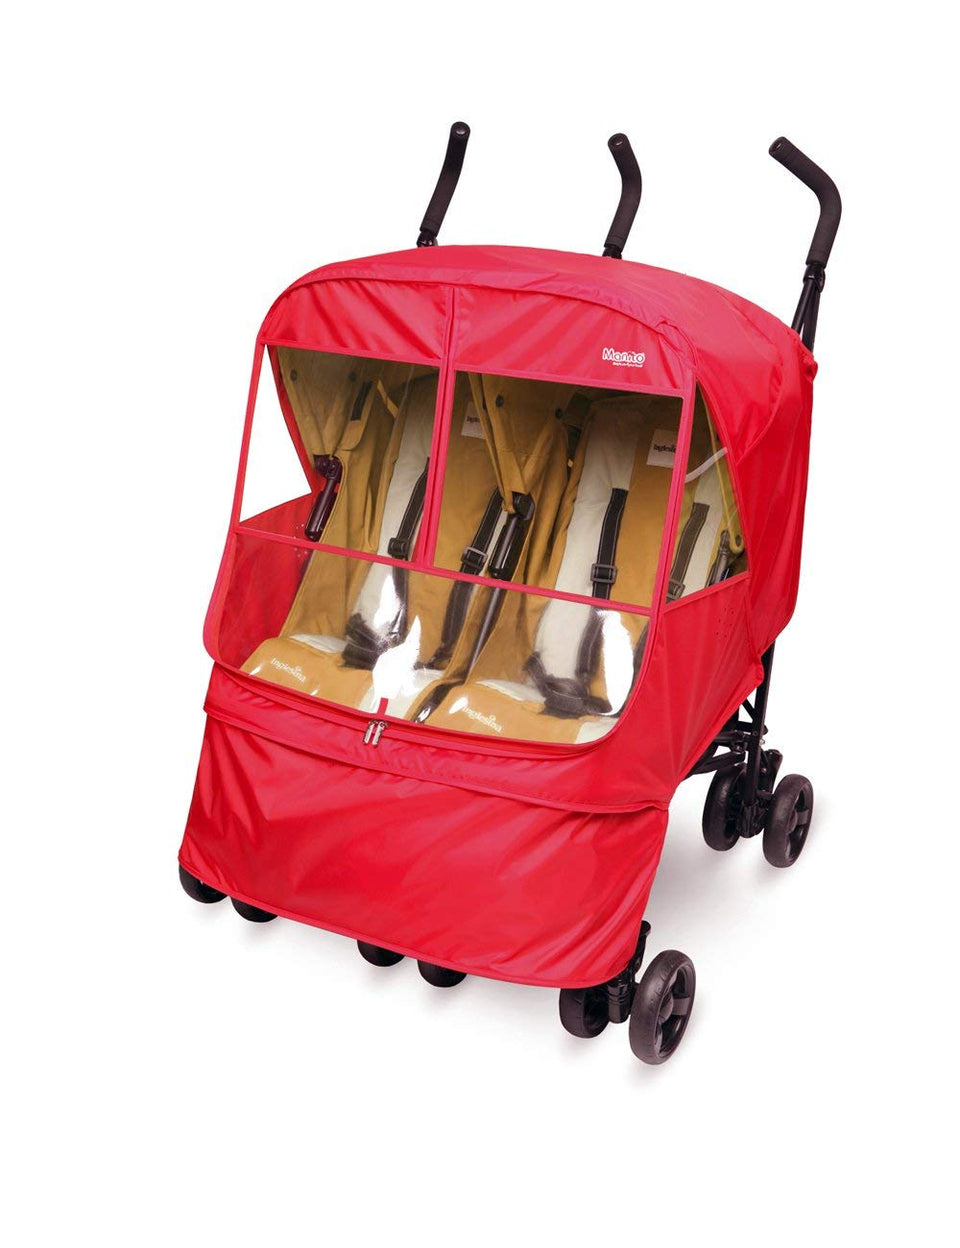 Elegance Alpha Twin Stroller Weather Shield (Red)